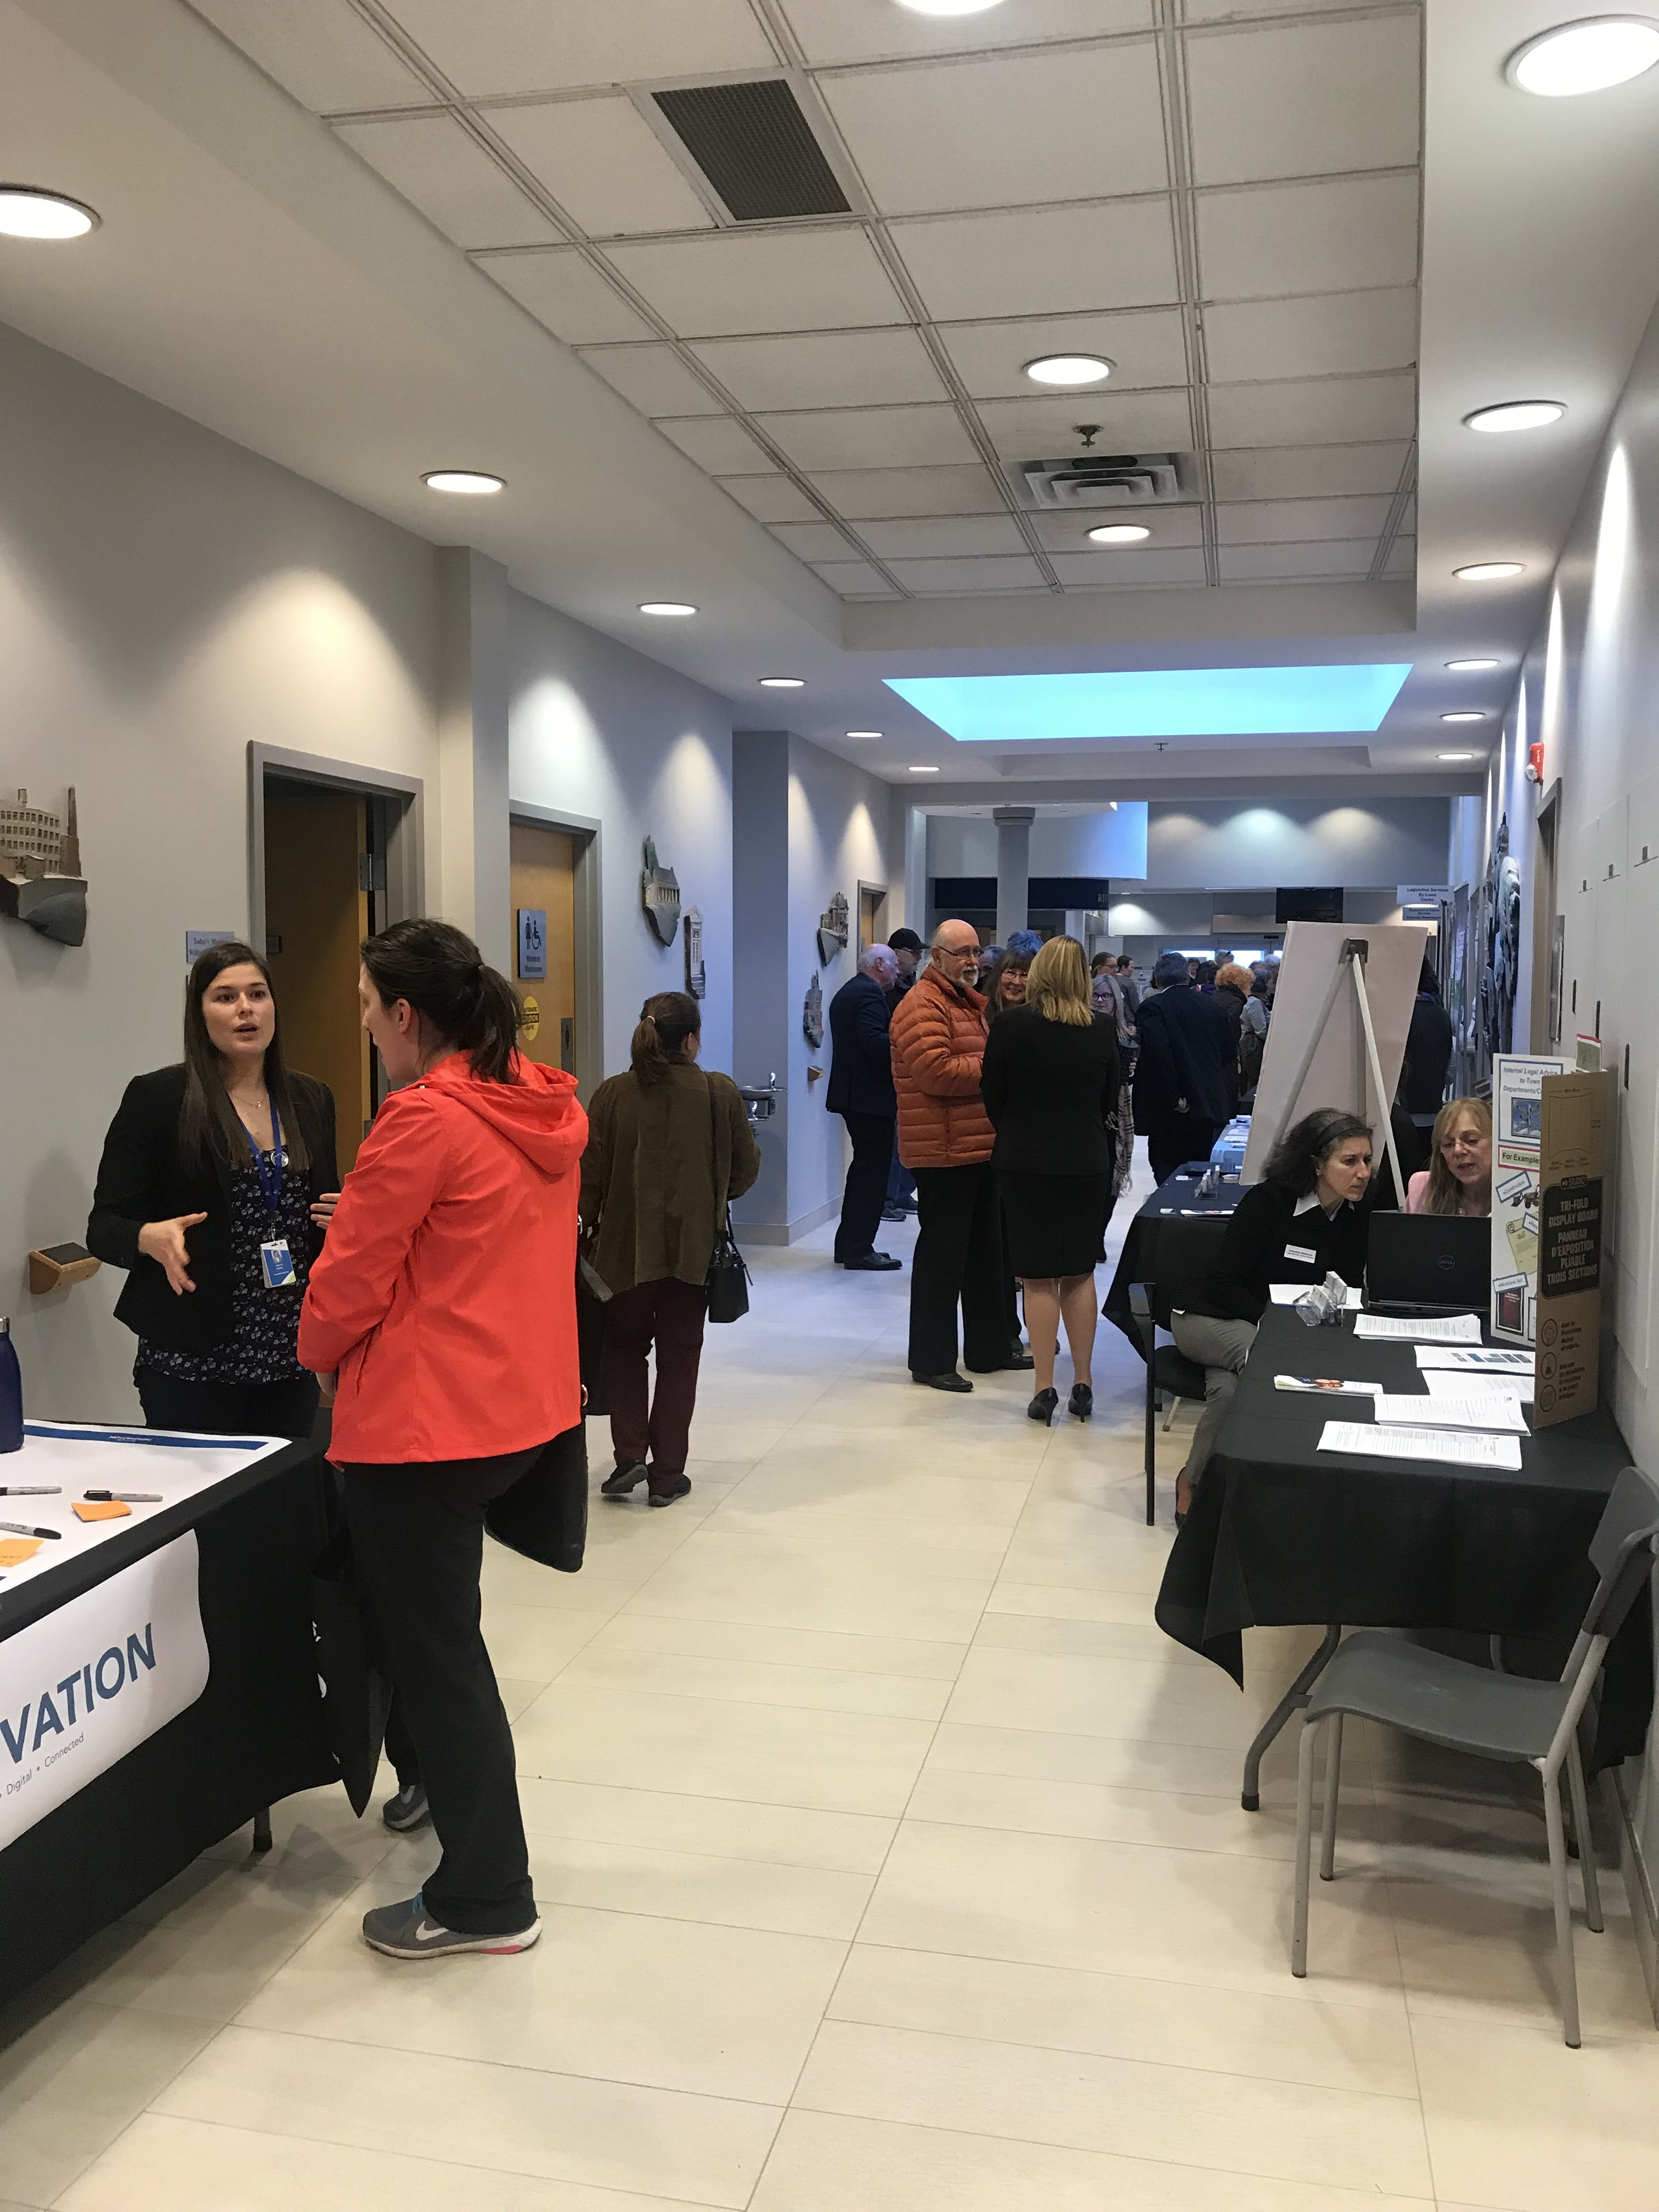 Community Open House event on February 27, 2018